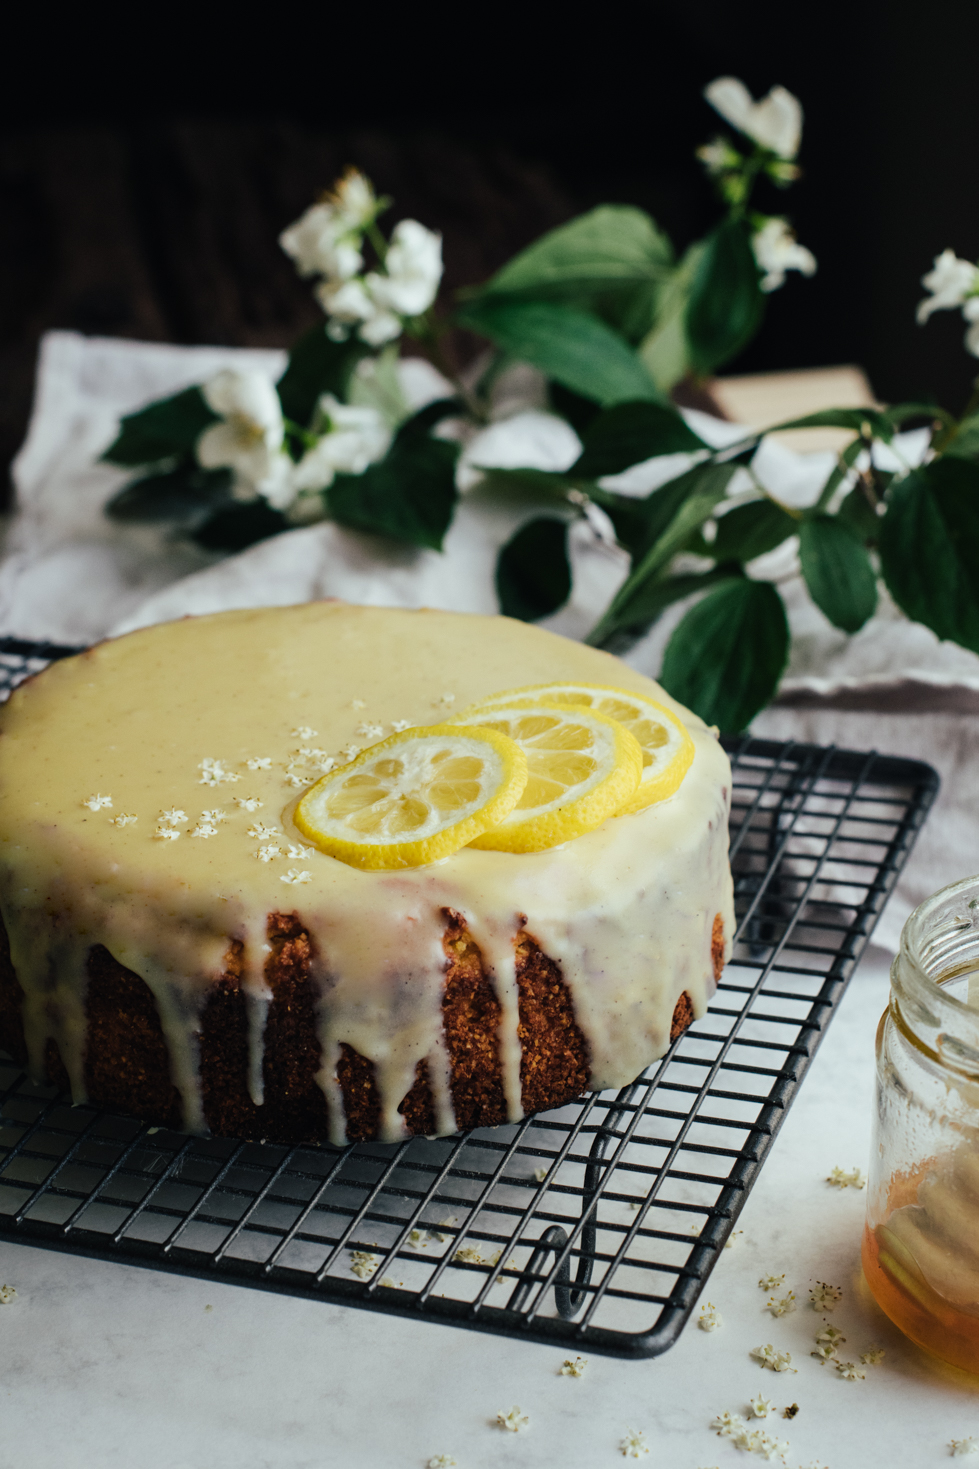 Lemon Polenta Cake & Elderflower White Chocolate Ganache